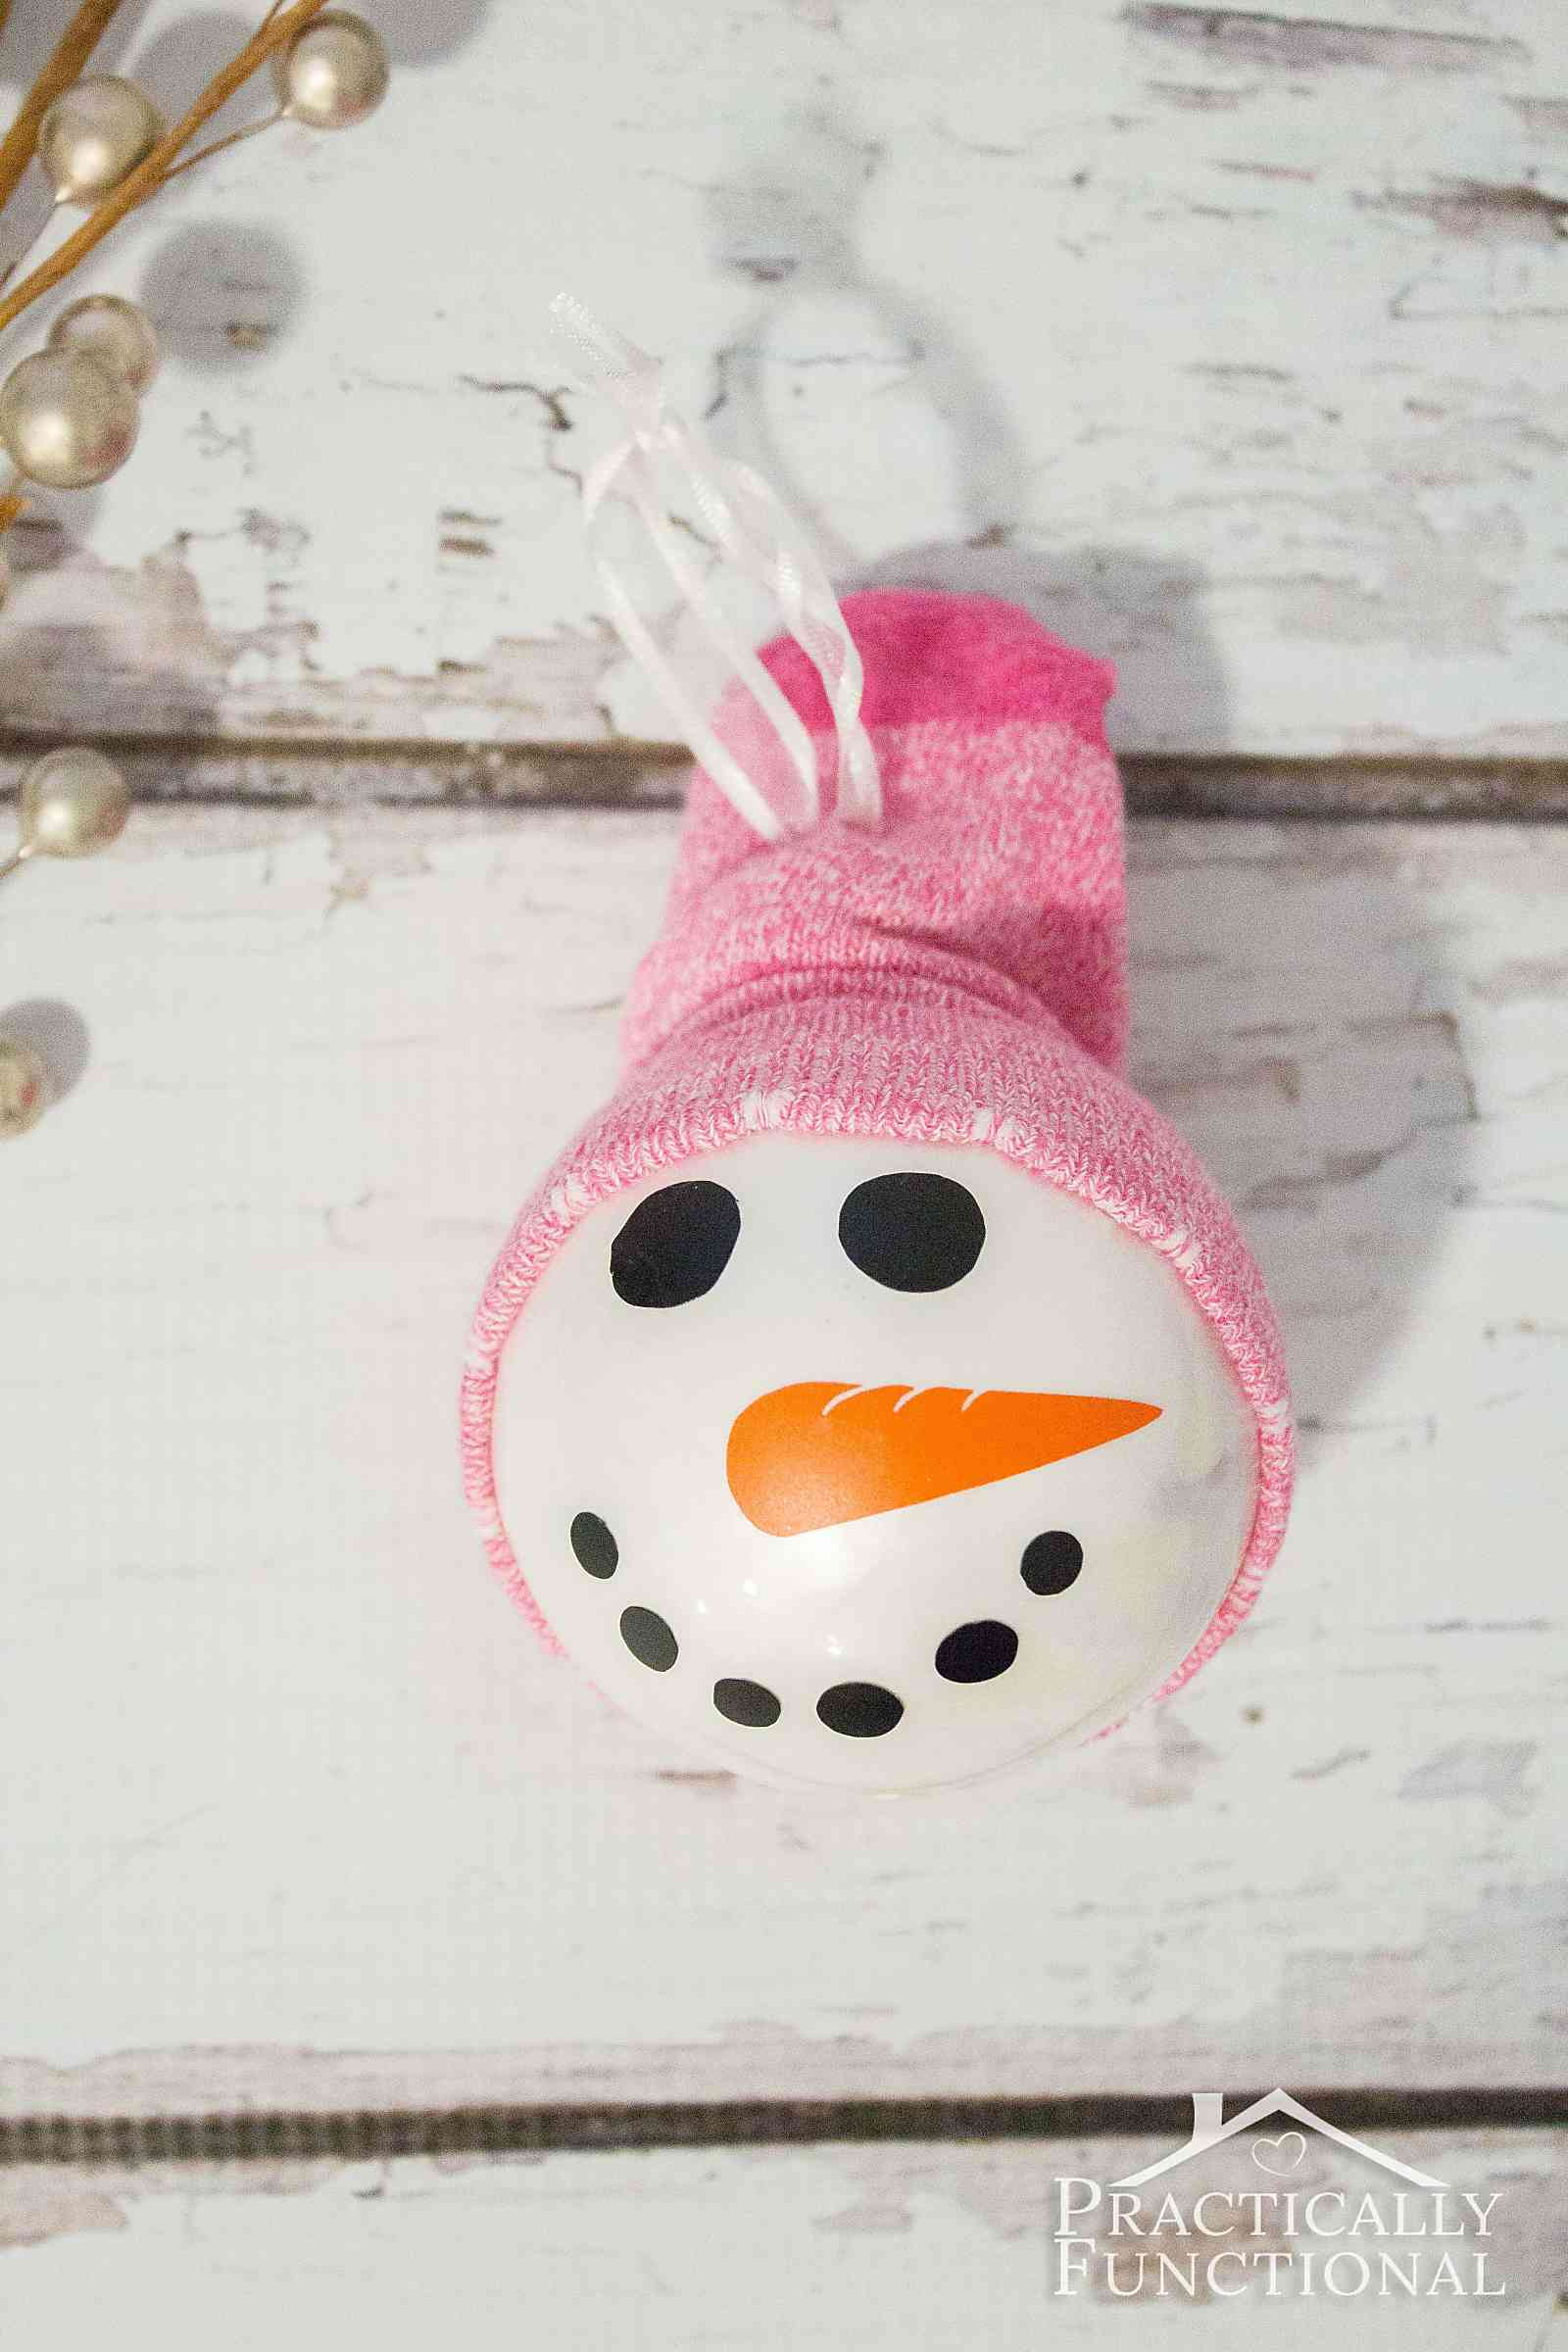 Got a sock that's missing it's pair? Make a cute DIY snowman ornament with it!